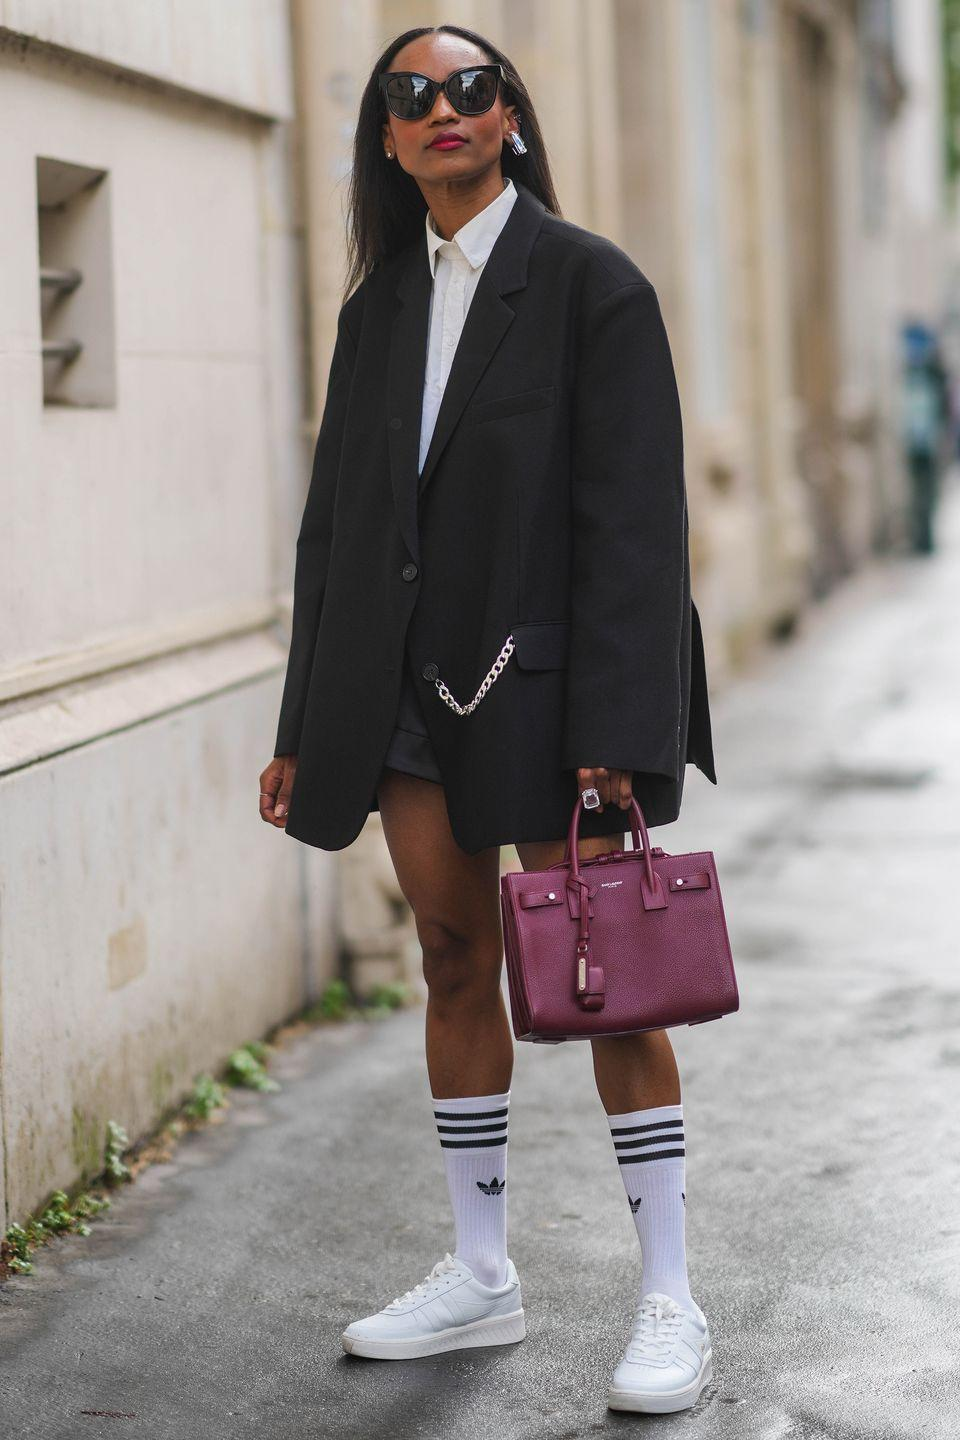 <p>We love this preppy look seen outside the Off-White show, with pulled-up socks and a buttoned-up shirt. Give it a go by adding a sporty touch to your polished look.</p>